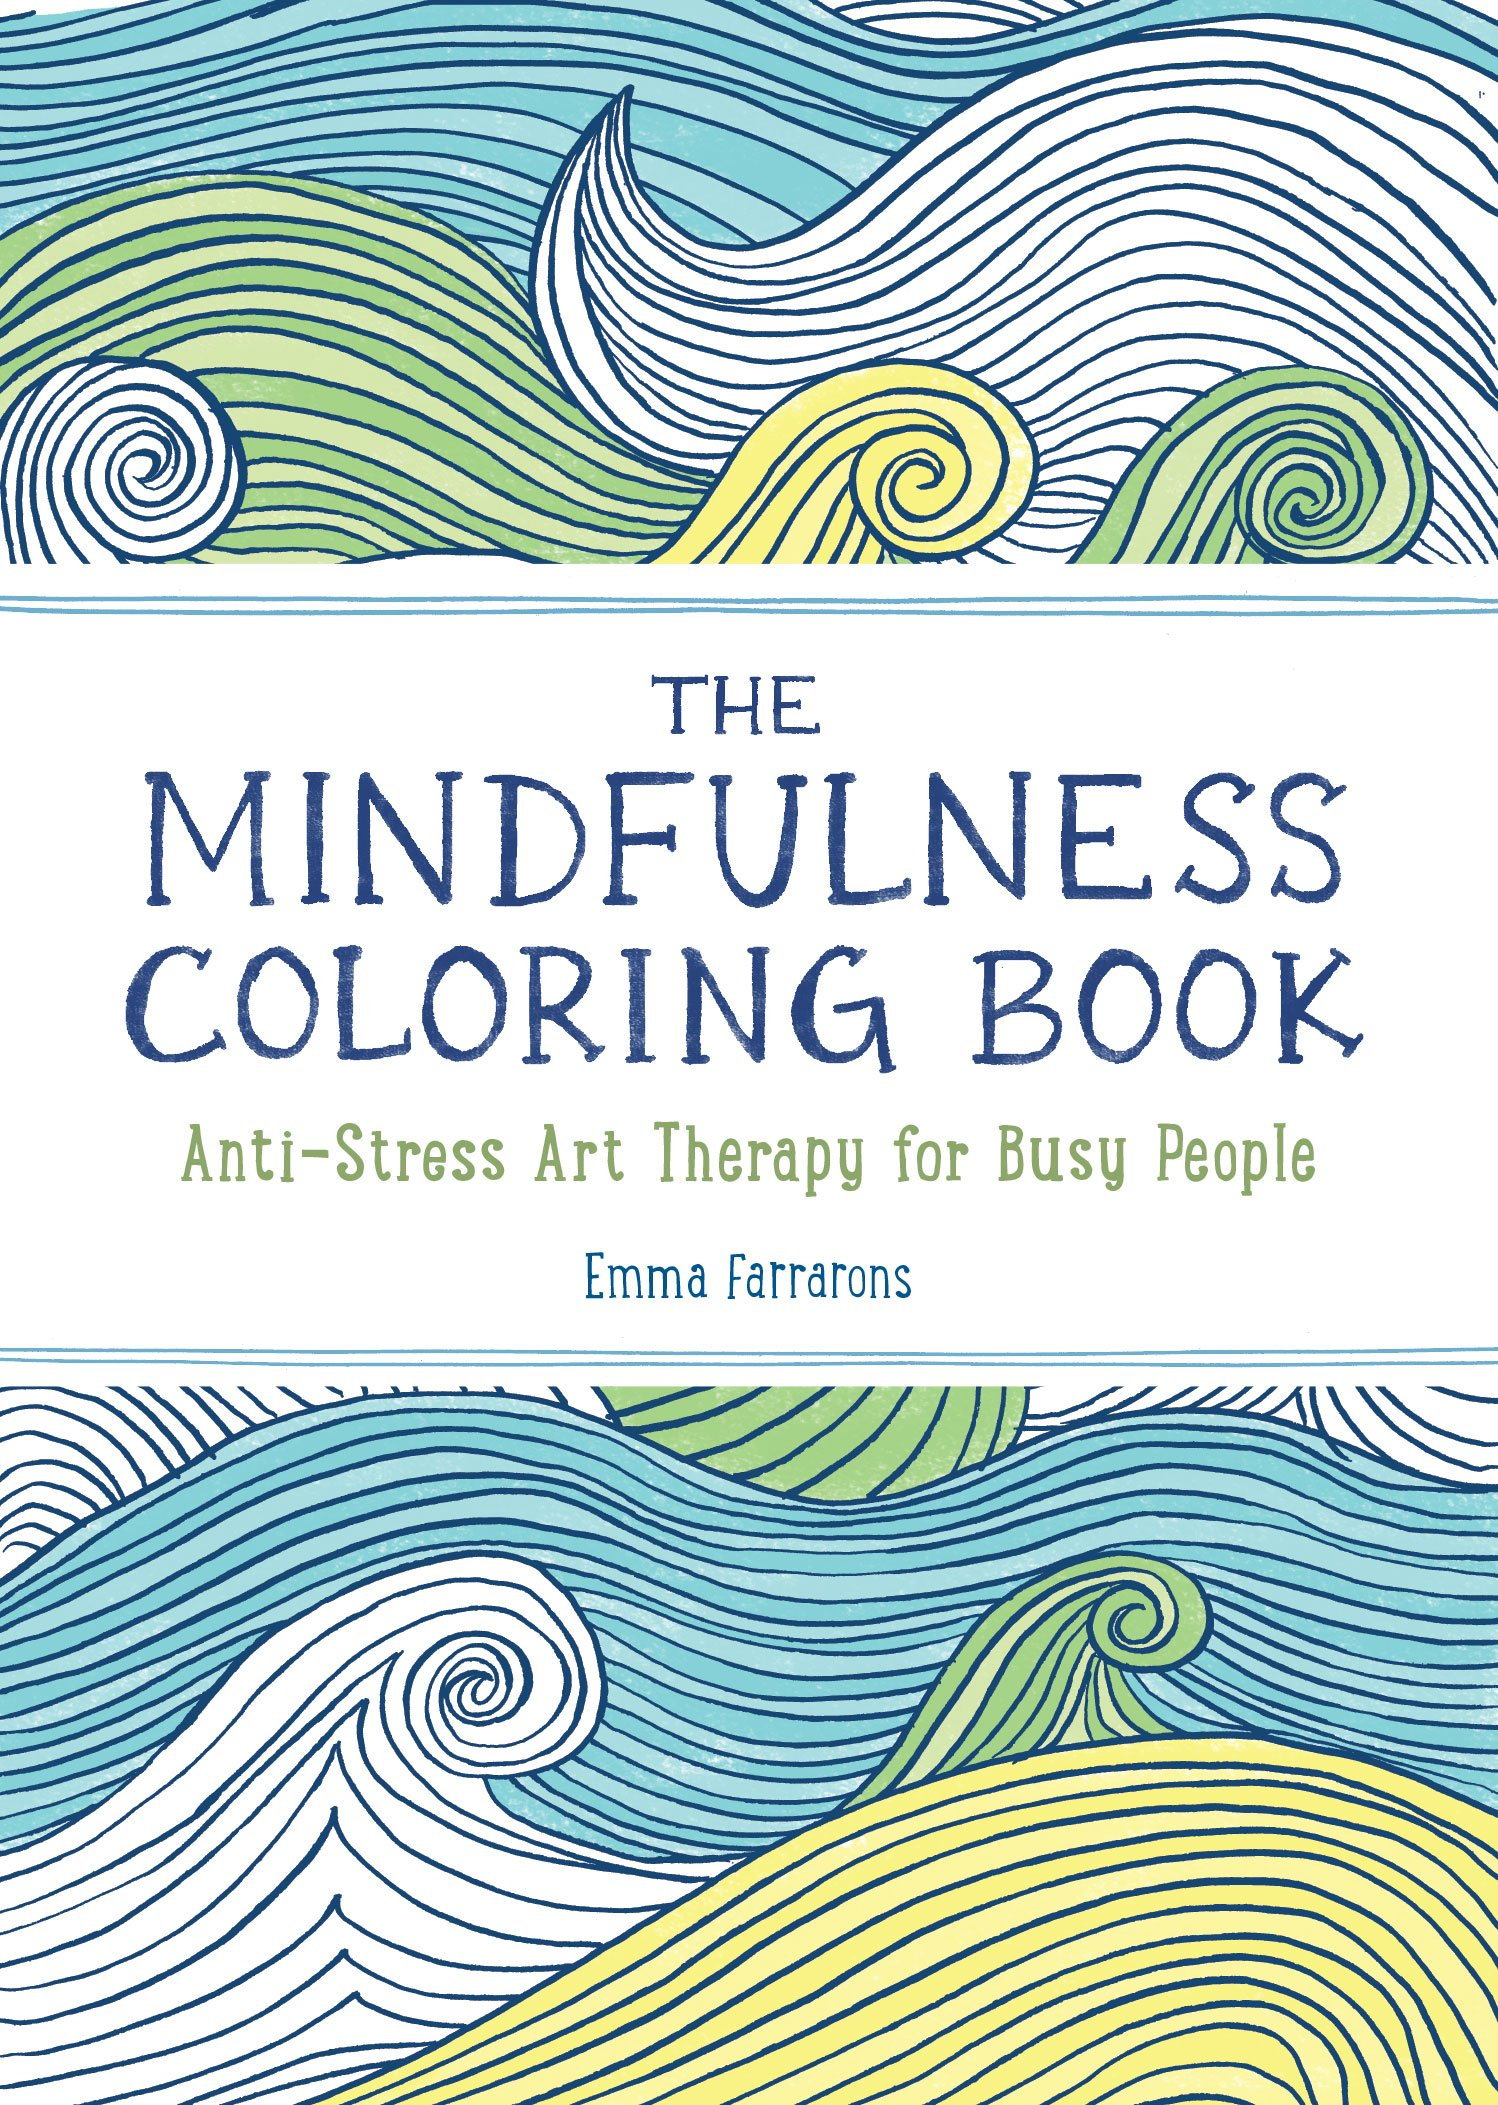 Color therapy anti stress coloring book app - The Mindfulness Coloring Book Anti Stress Art Therapy For Busy People The Mindfulness Coloring Series Emma Farrarons 9781615192823 Amazon Com Books